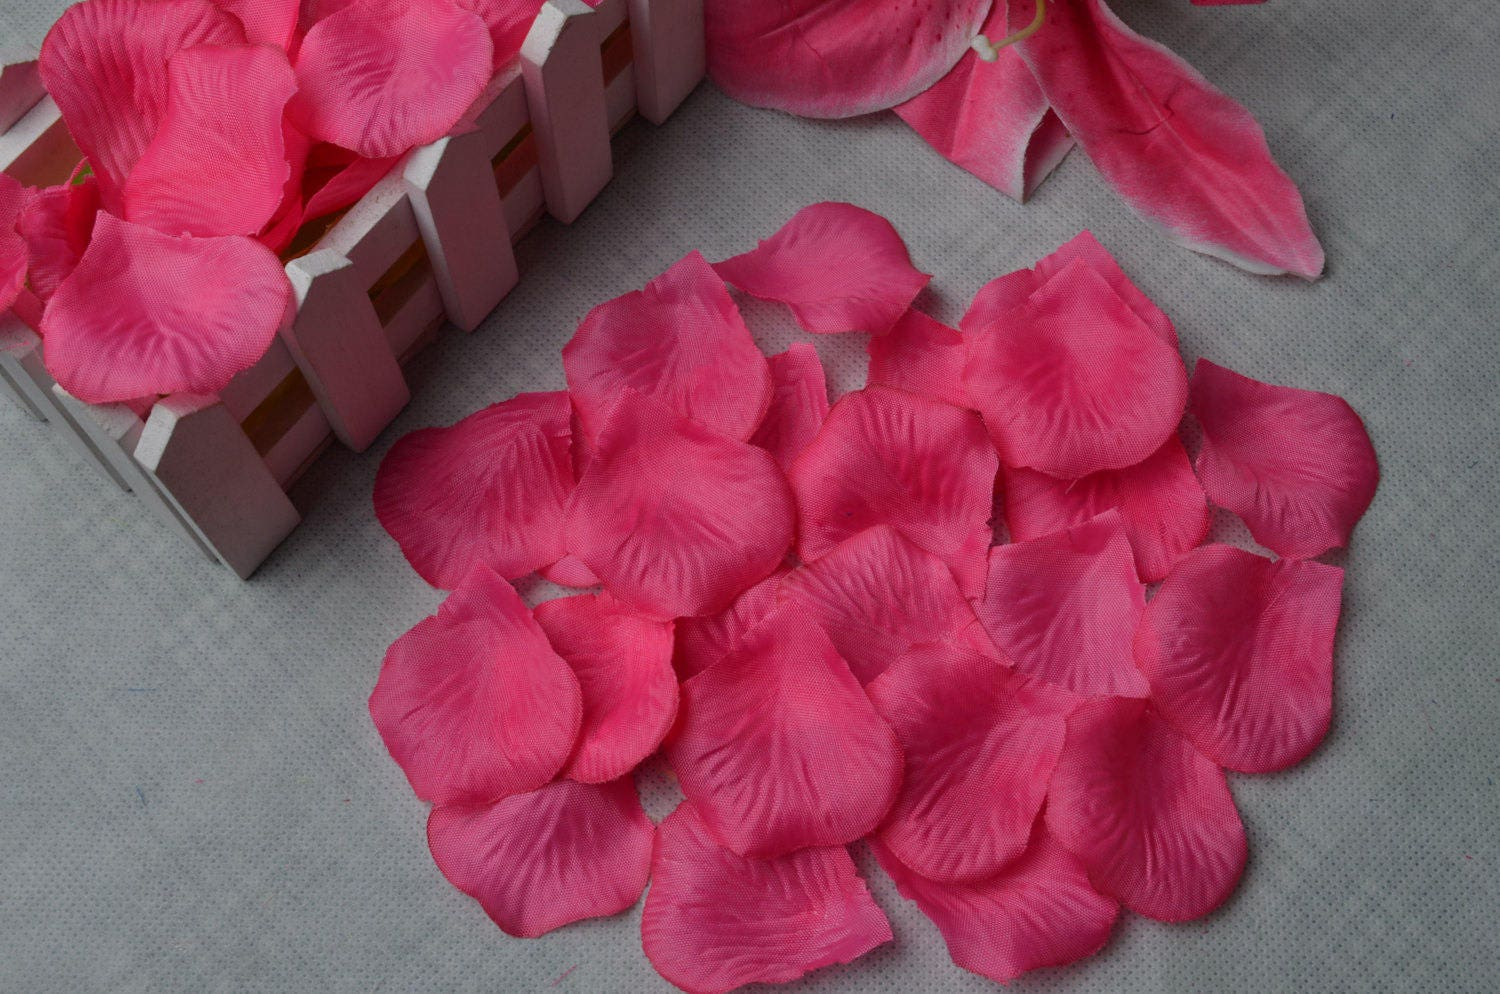 Wholesale 1000pcs hot pink color fabric rose petals silk flower for wholesale 1000pcs hot pink color fabric rose petals silk flower for diy accessoryor mightylinksfo